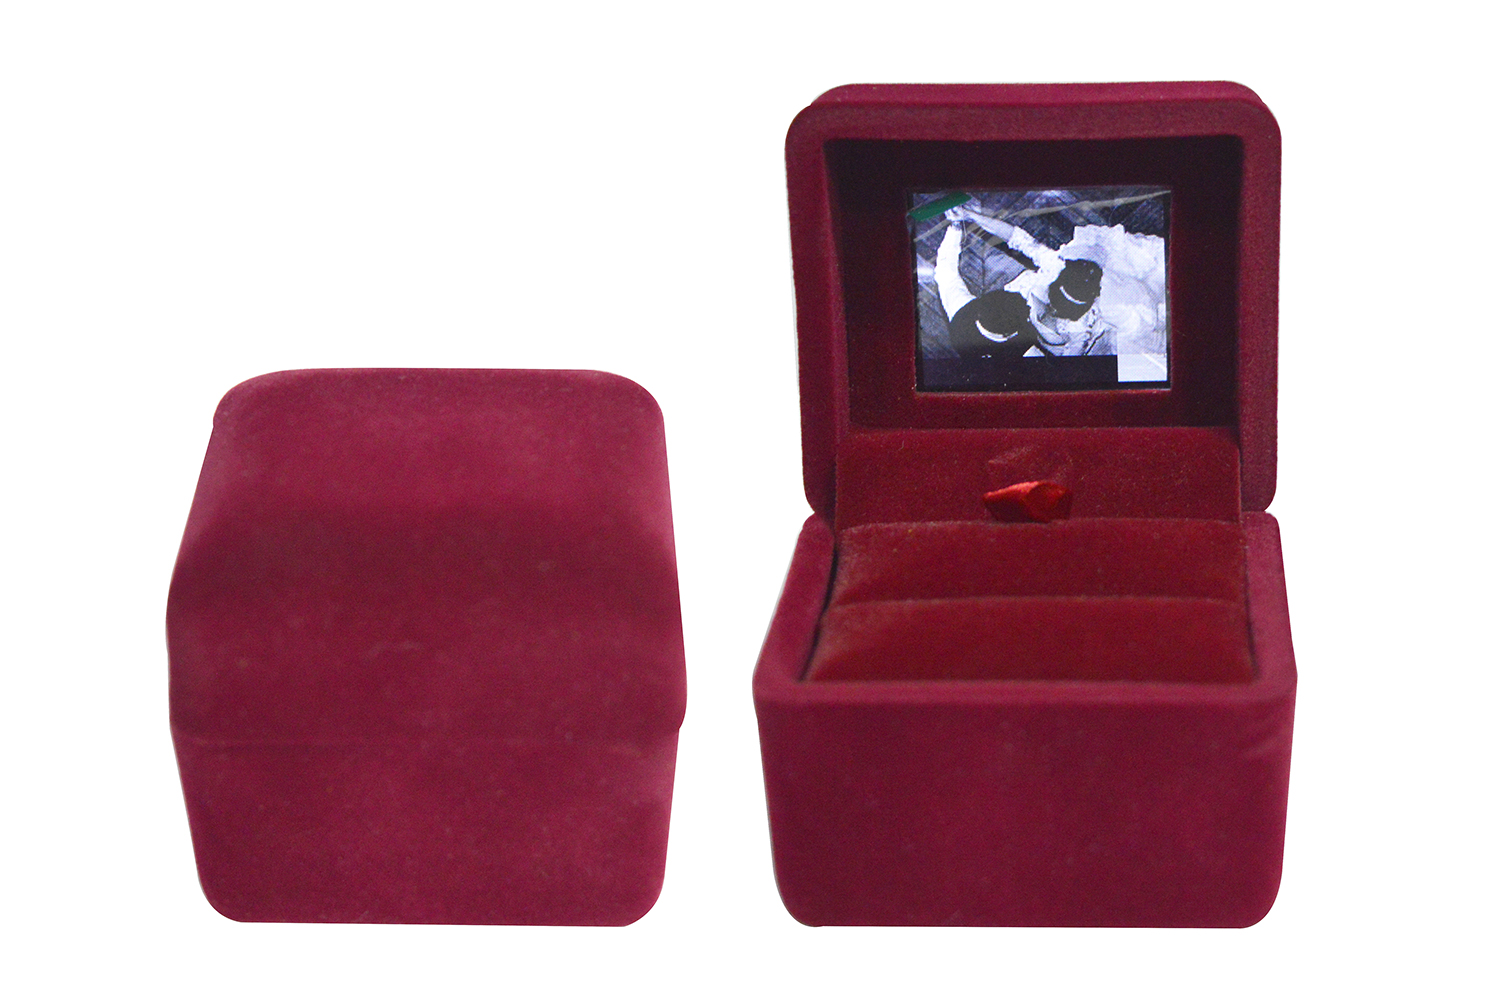 LCD Jewellery Boxes